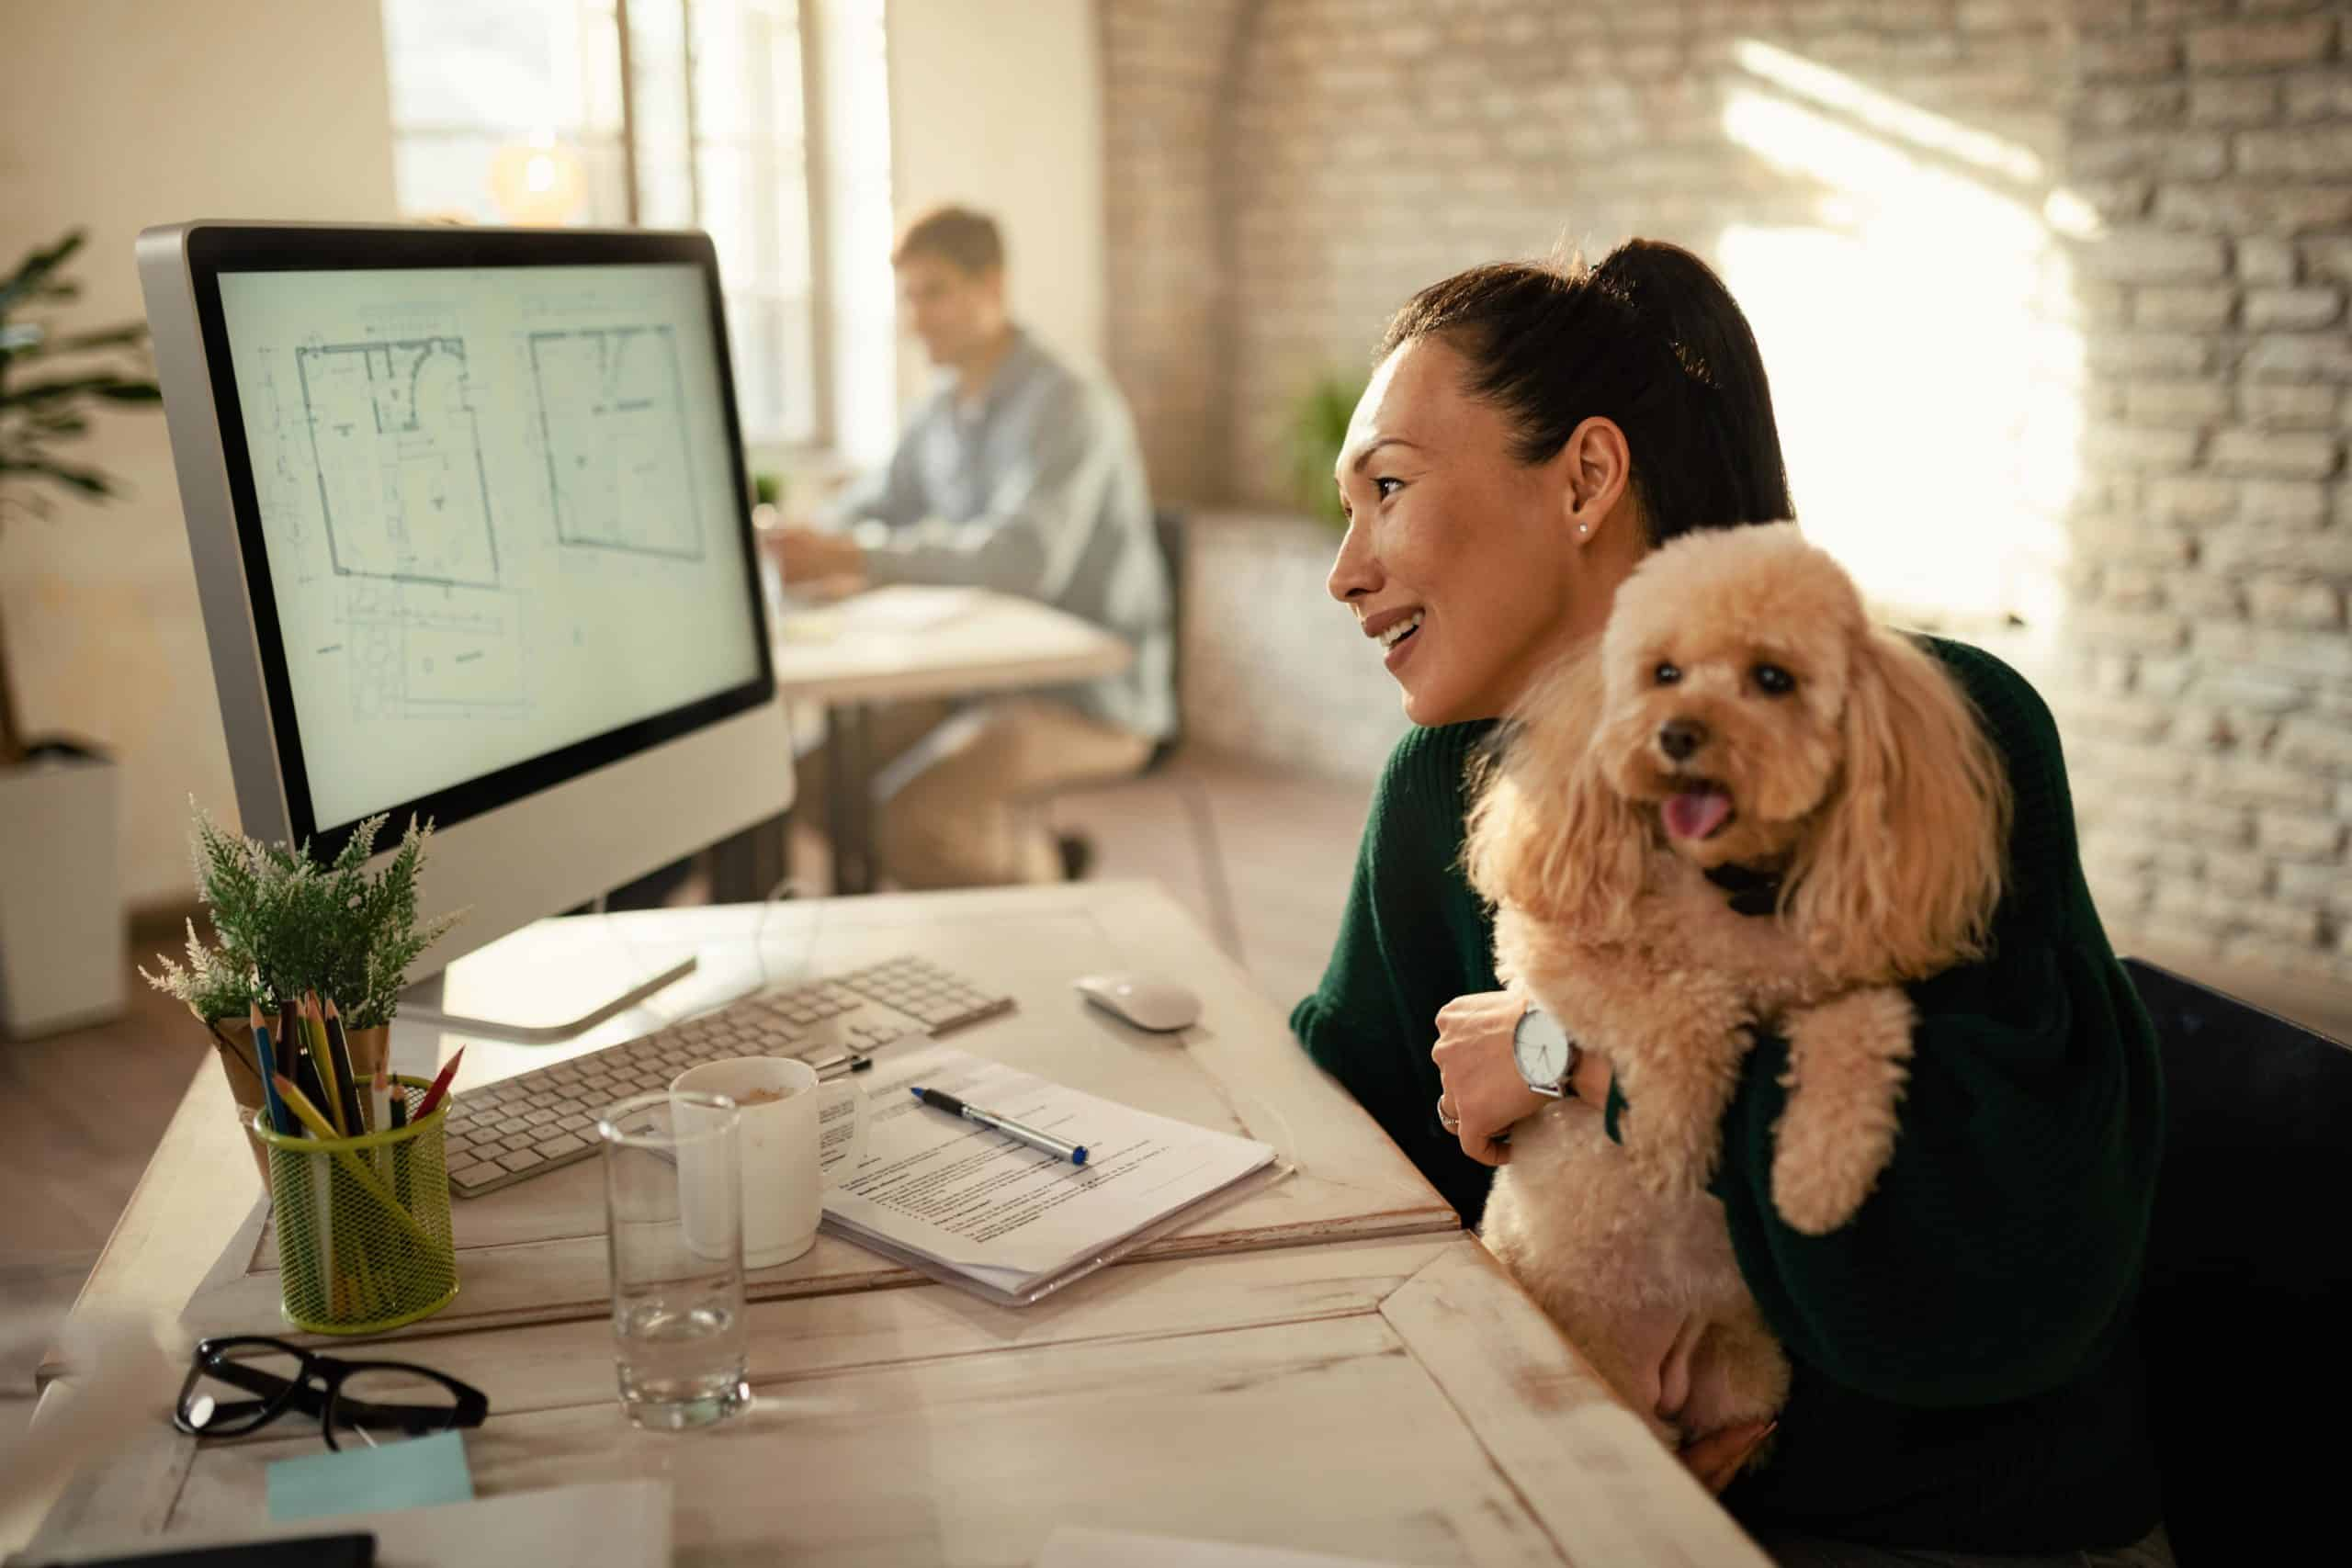 Woman holds poodle as she works in her office. Use technology, pet sitters, and dog-walking services to help create a work/life balance as a pet parent and entrepreneur.